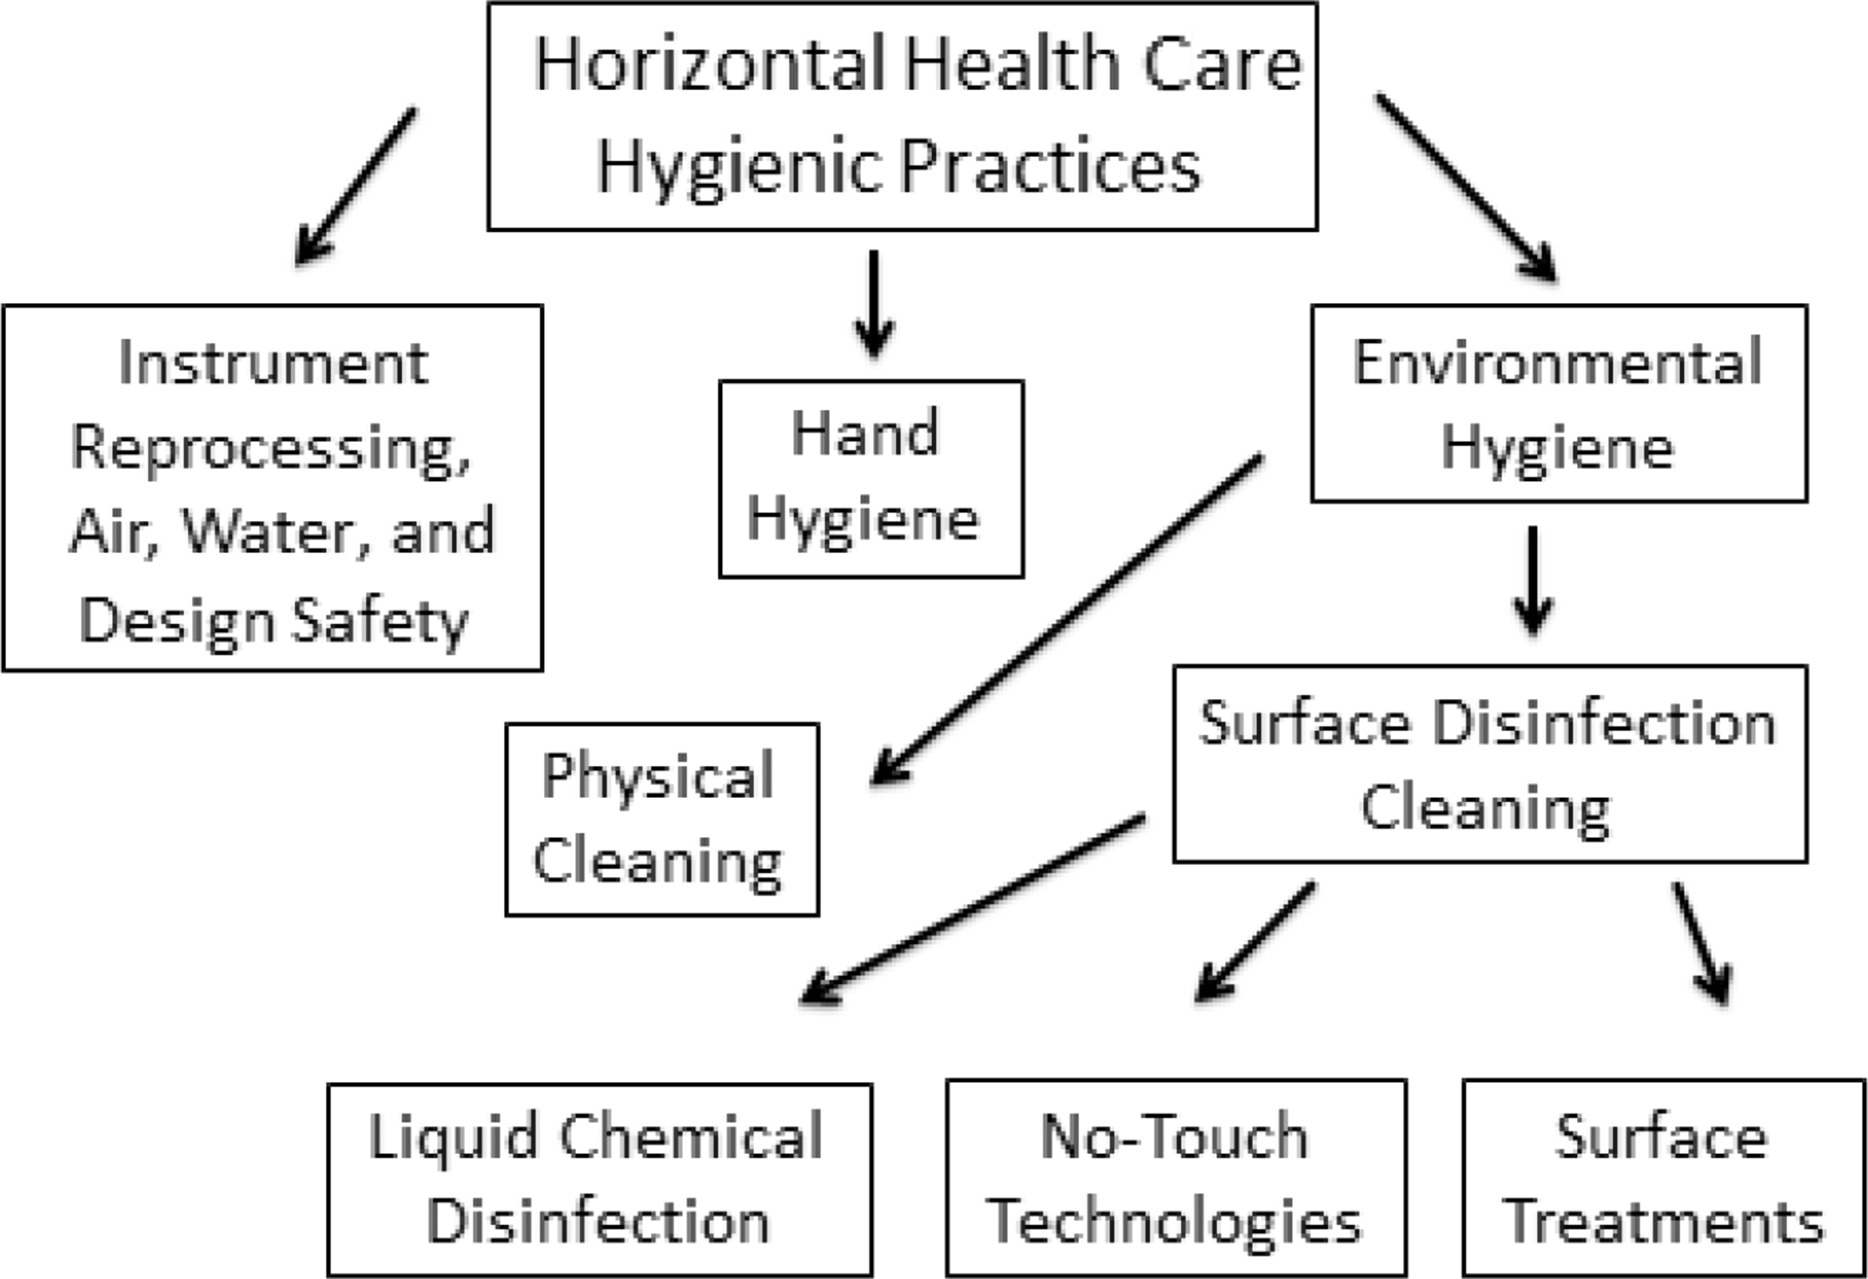 environmental hygiene pictures This first study session in the module serves to introduce you to the important  concepts and key terms that are used in environmental health and hygiene.